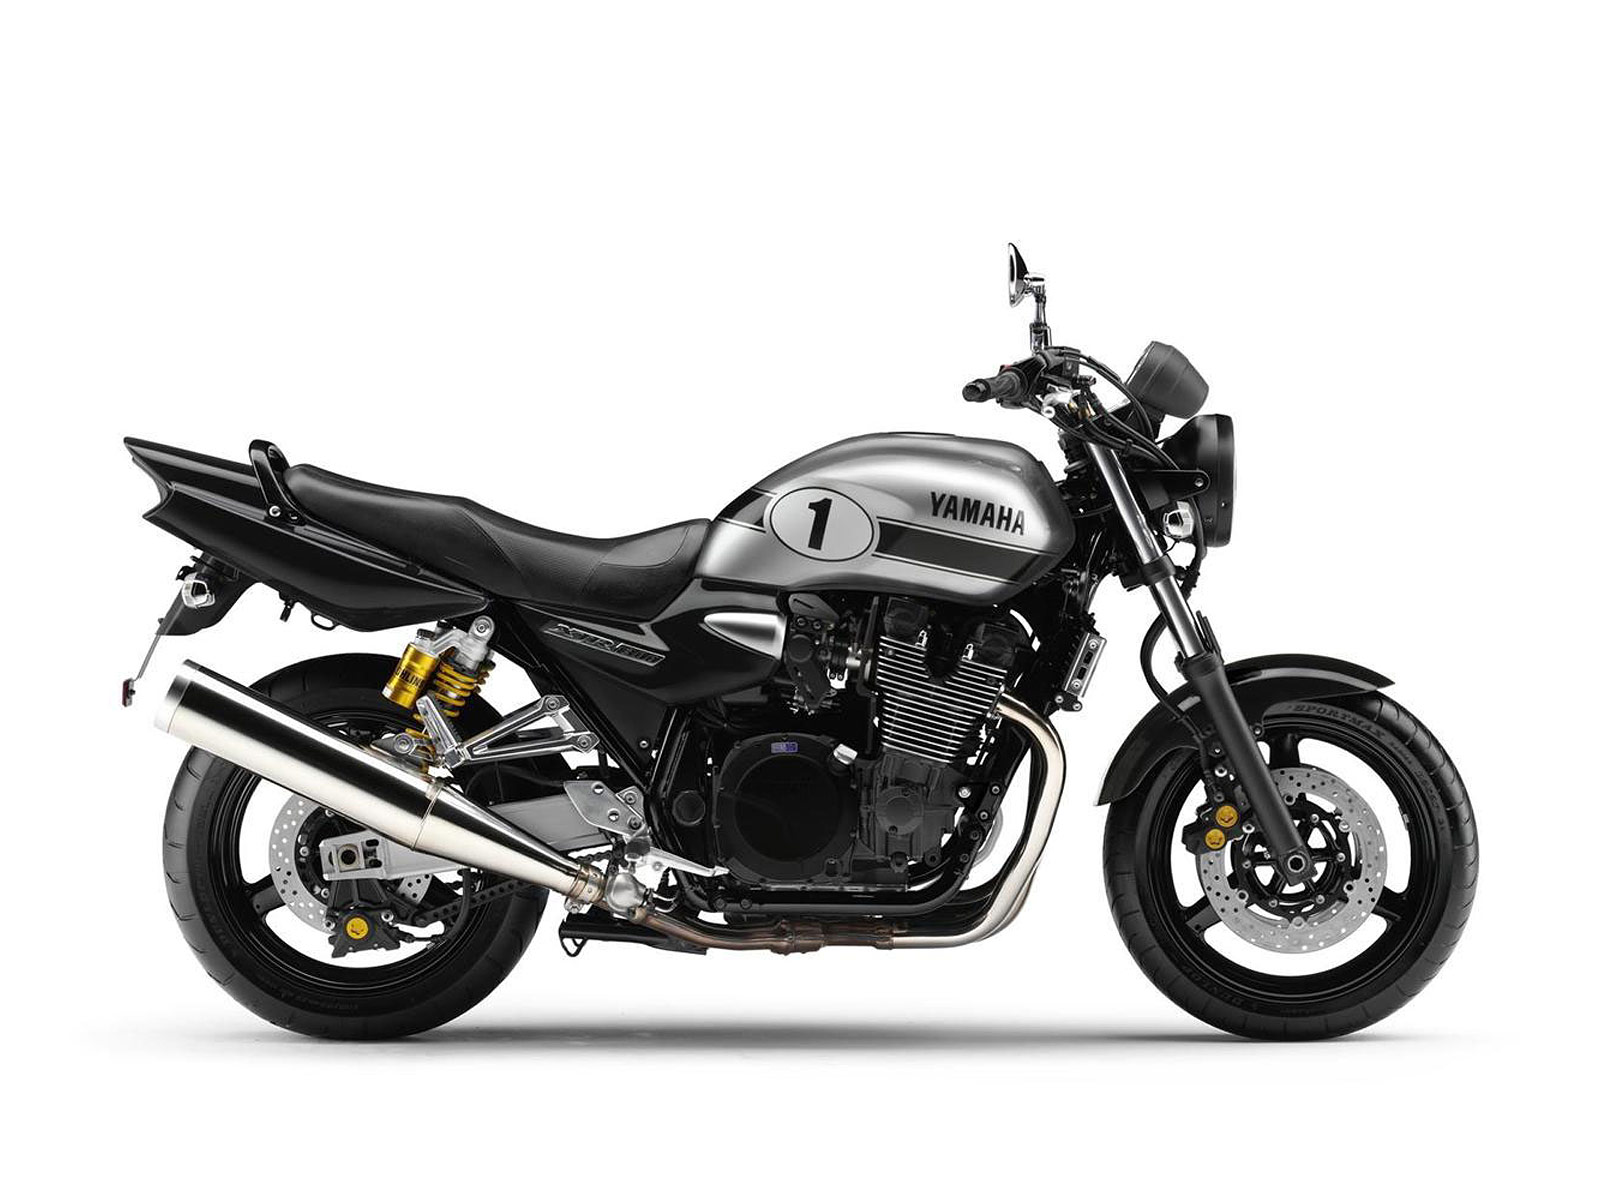 2013 xjr1300 motorcycle insurance information yamaha. Black Bedroom Furniture Sets. Home Design Ideas